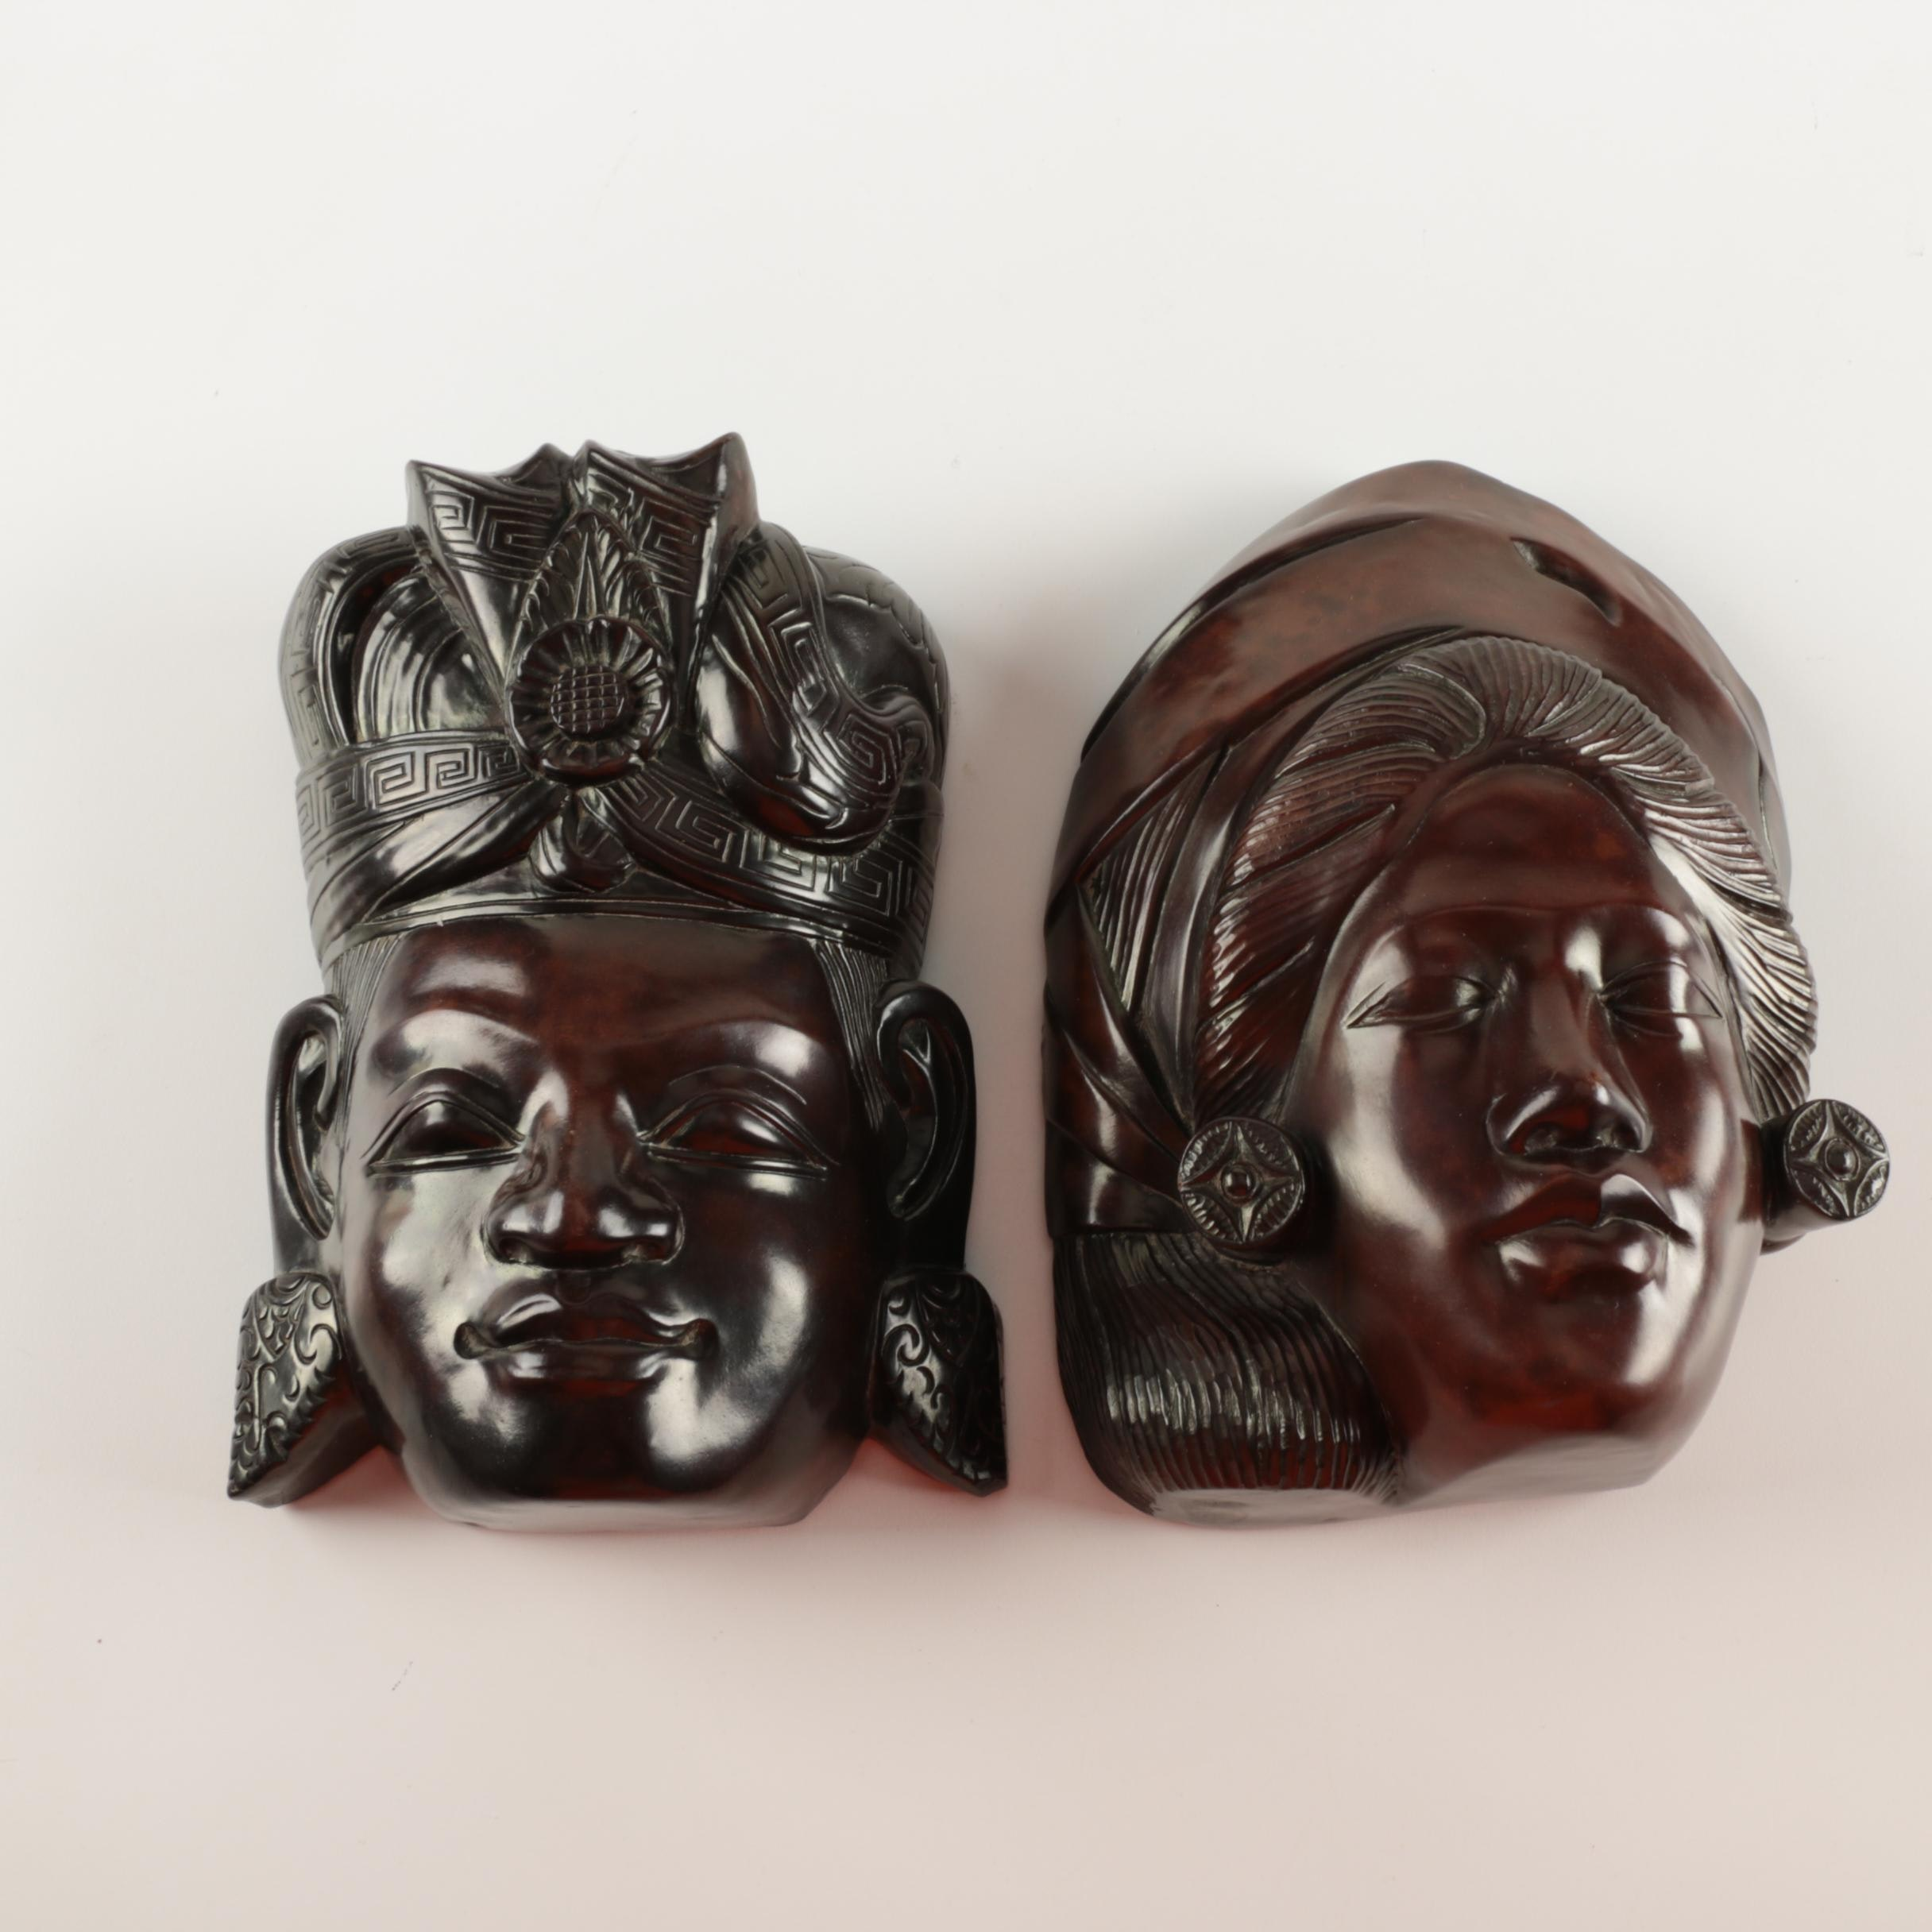 Balinese Style Carved Wooden Masks